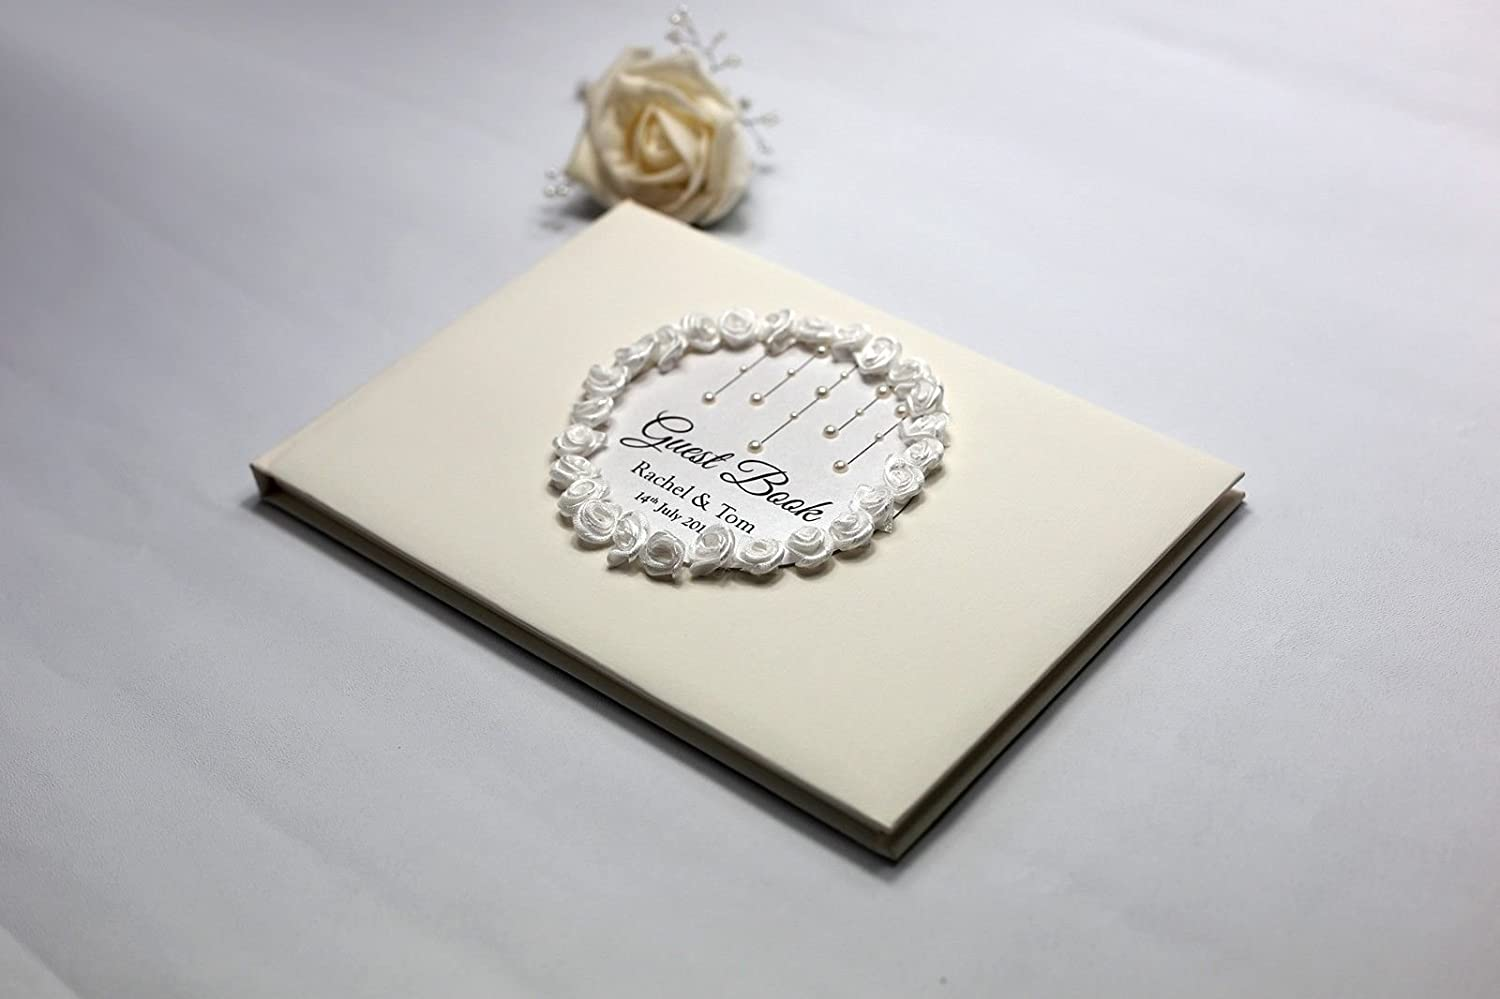 Personalised Wedding Guest Book Elegant Ivory Centre Rose Border Pearl Drops (White Rose) BigBold Creative